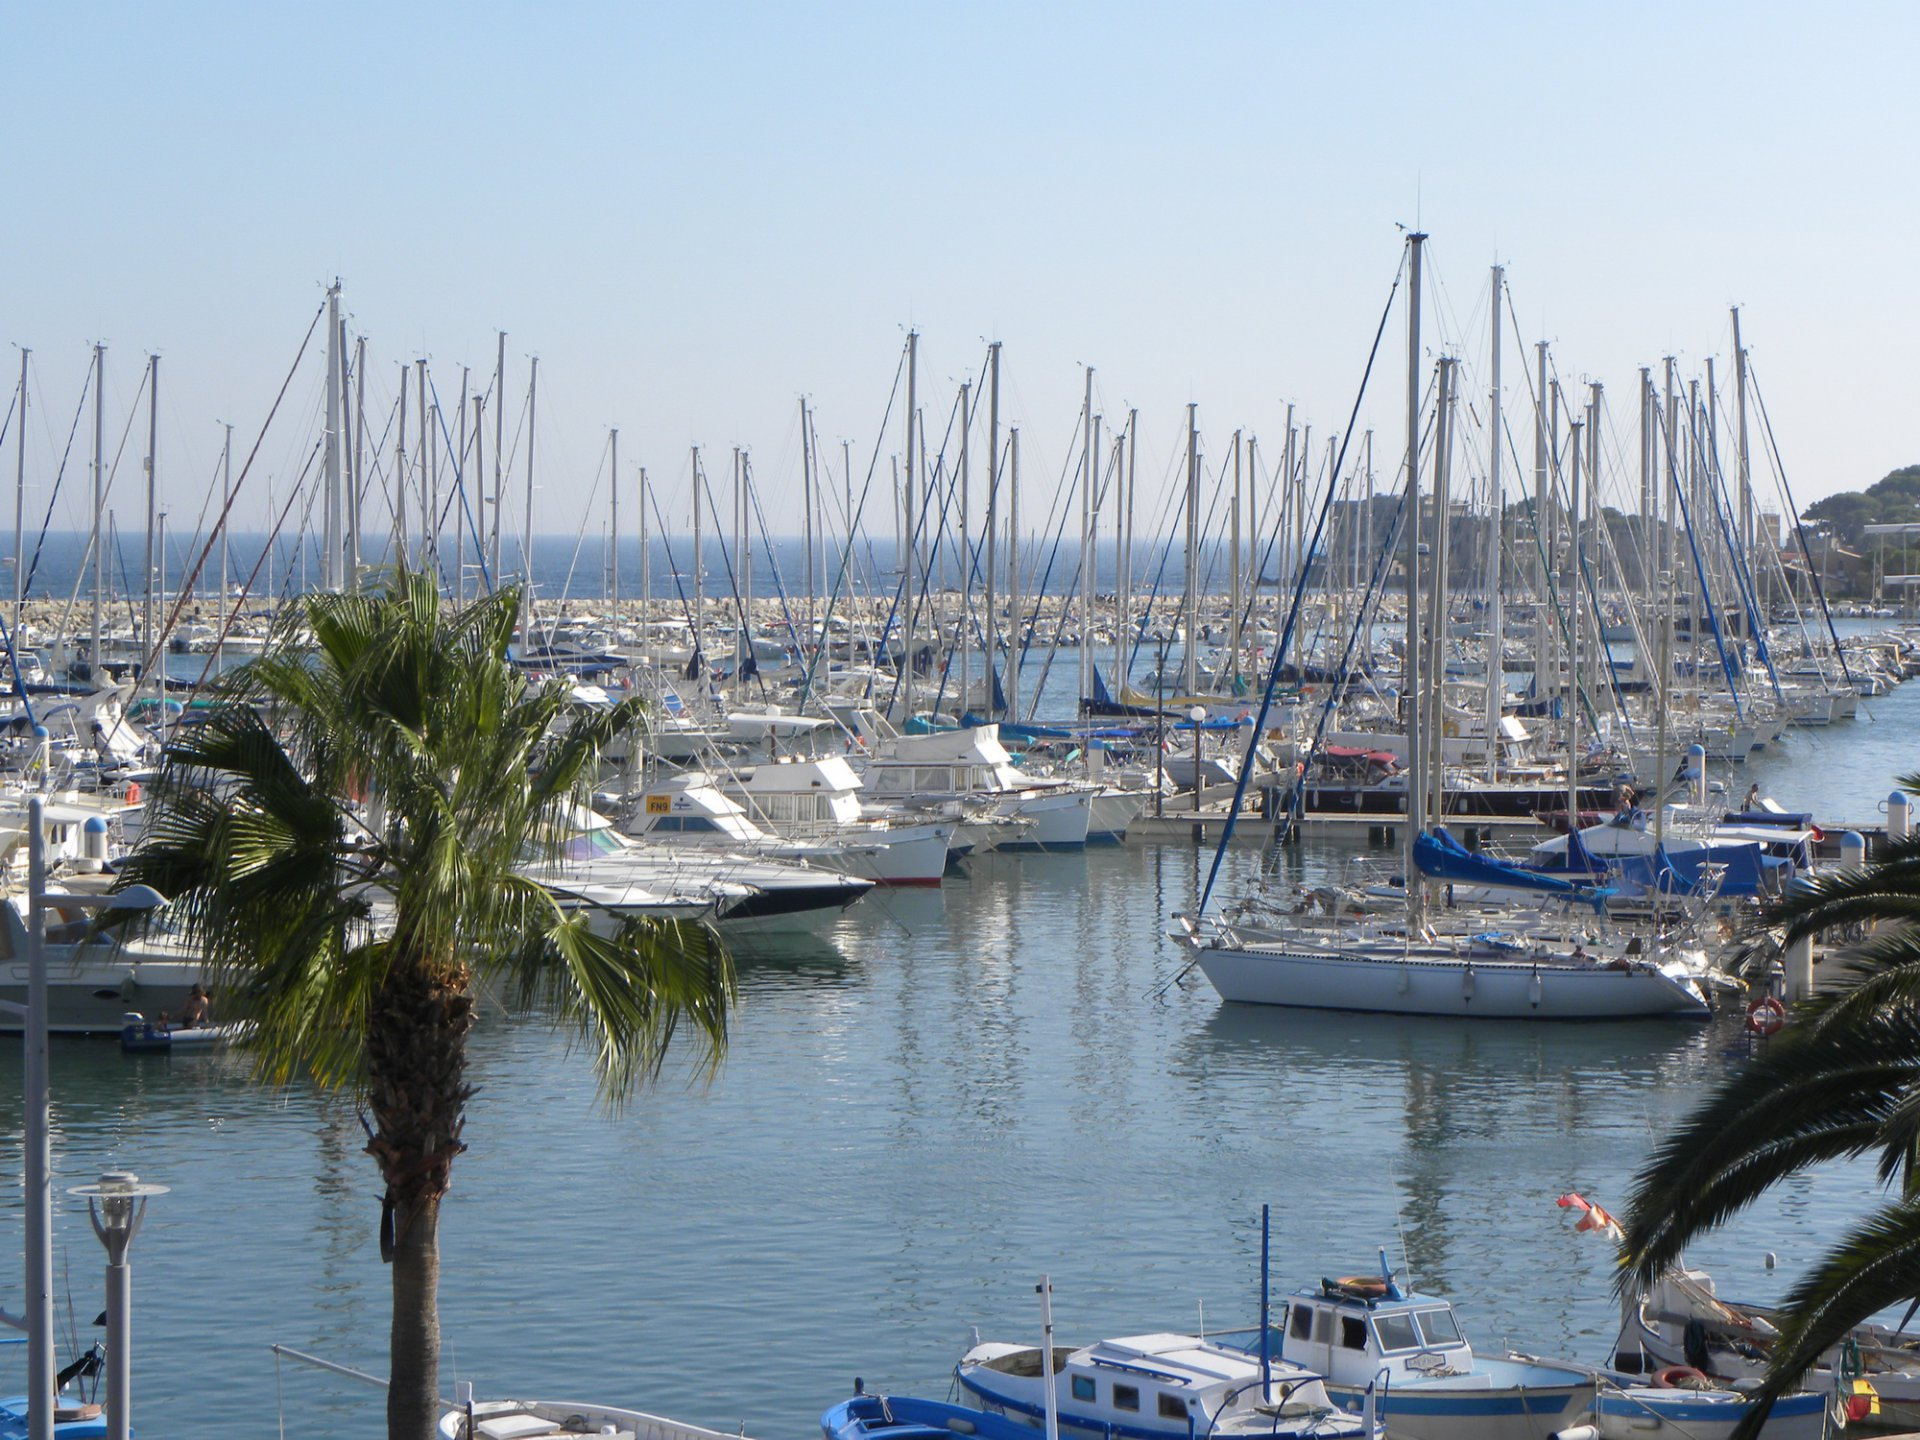 Port de Plaisance de Bandol